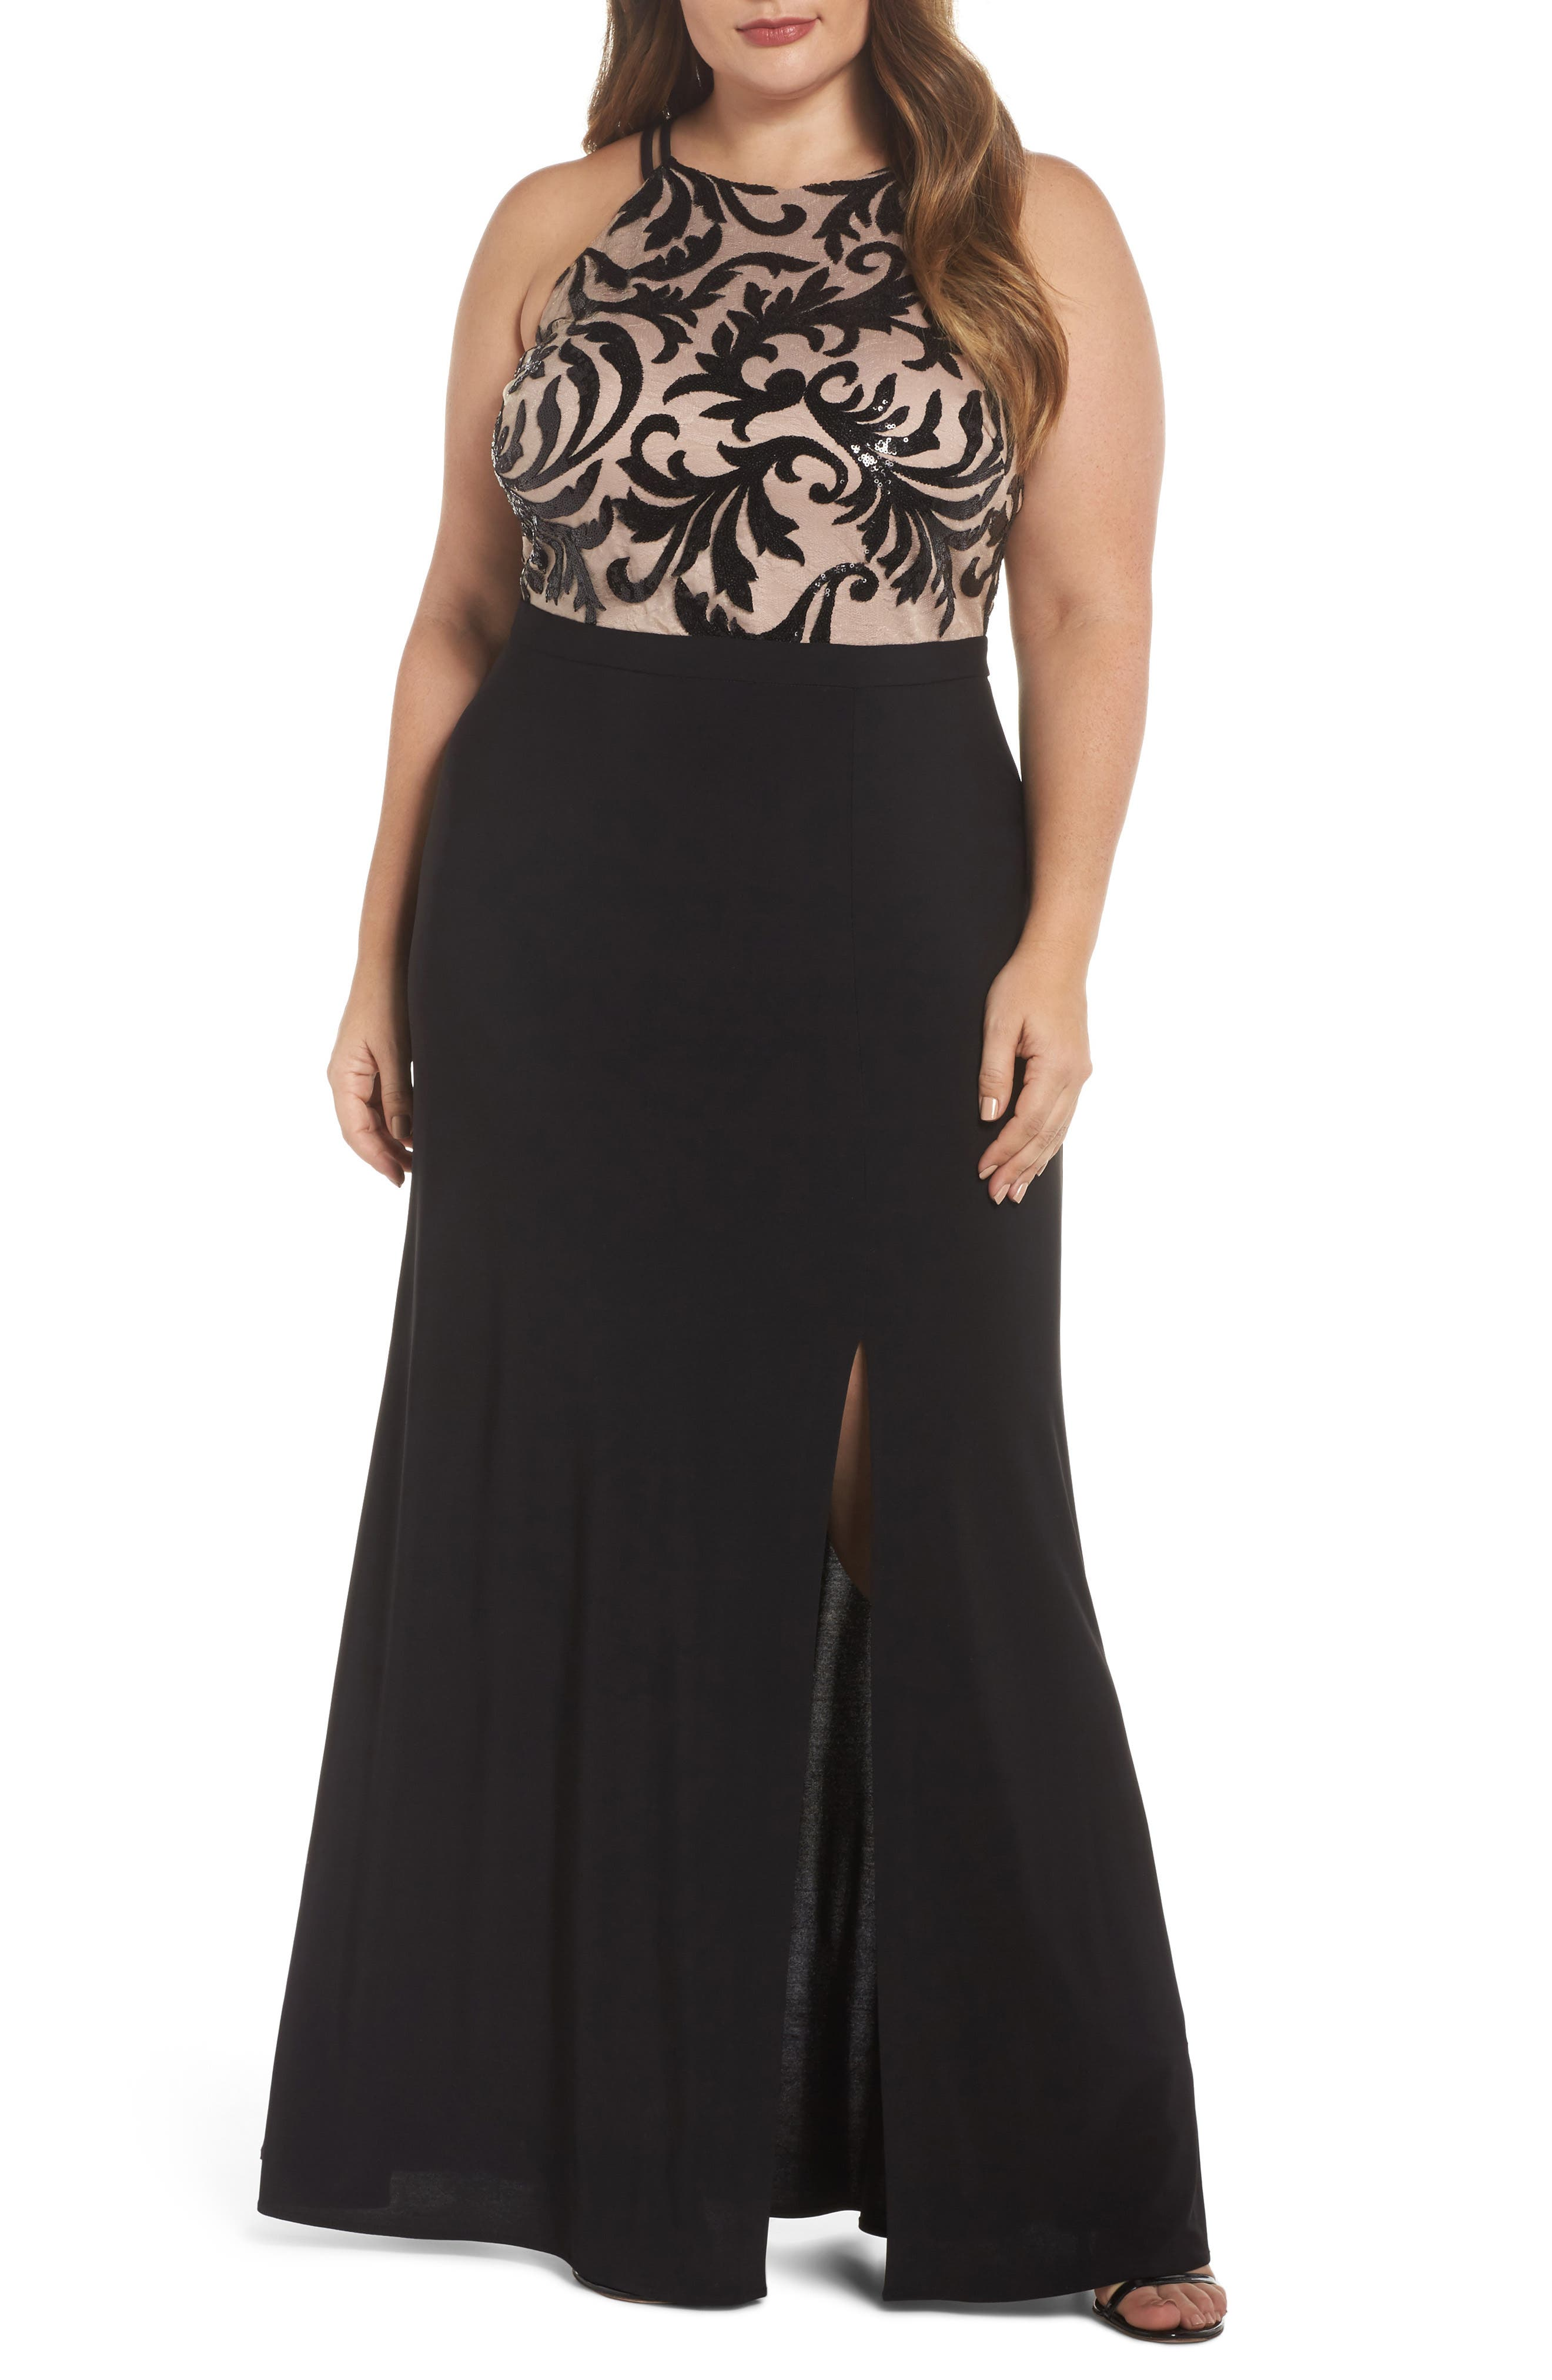 Sequin Bodice Gown,                             Main thumbnail 1, color,                             BLACK/ NUDE